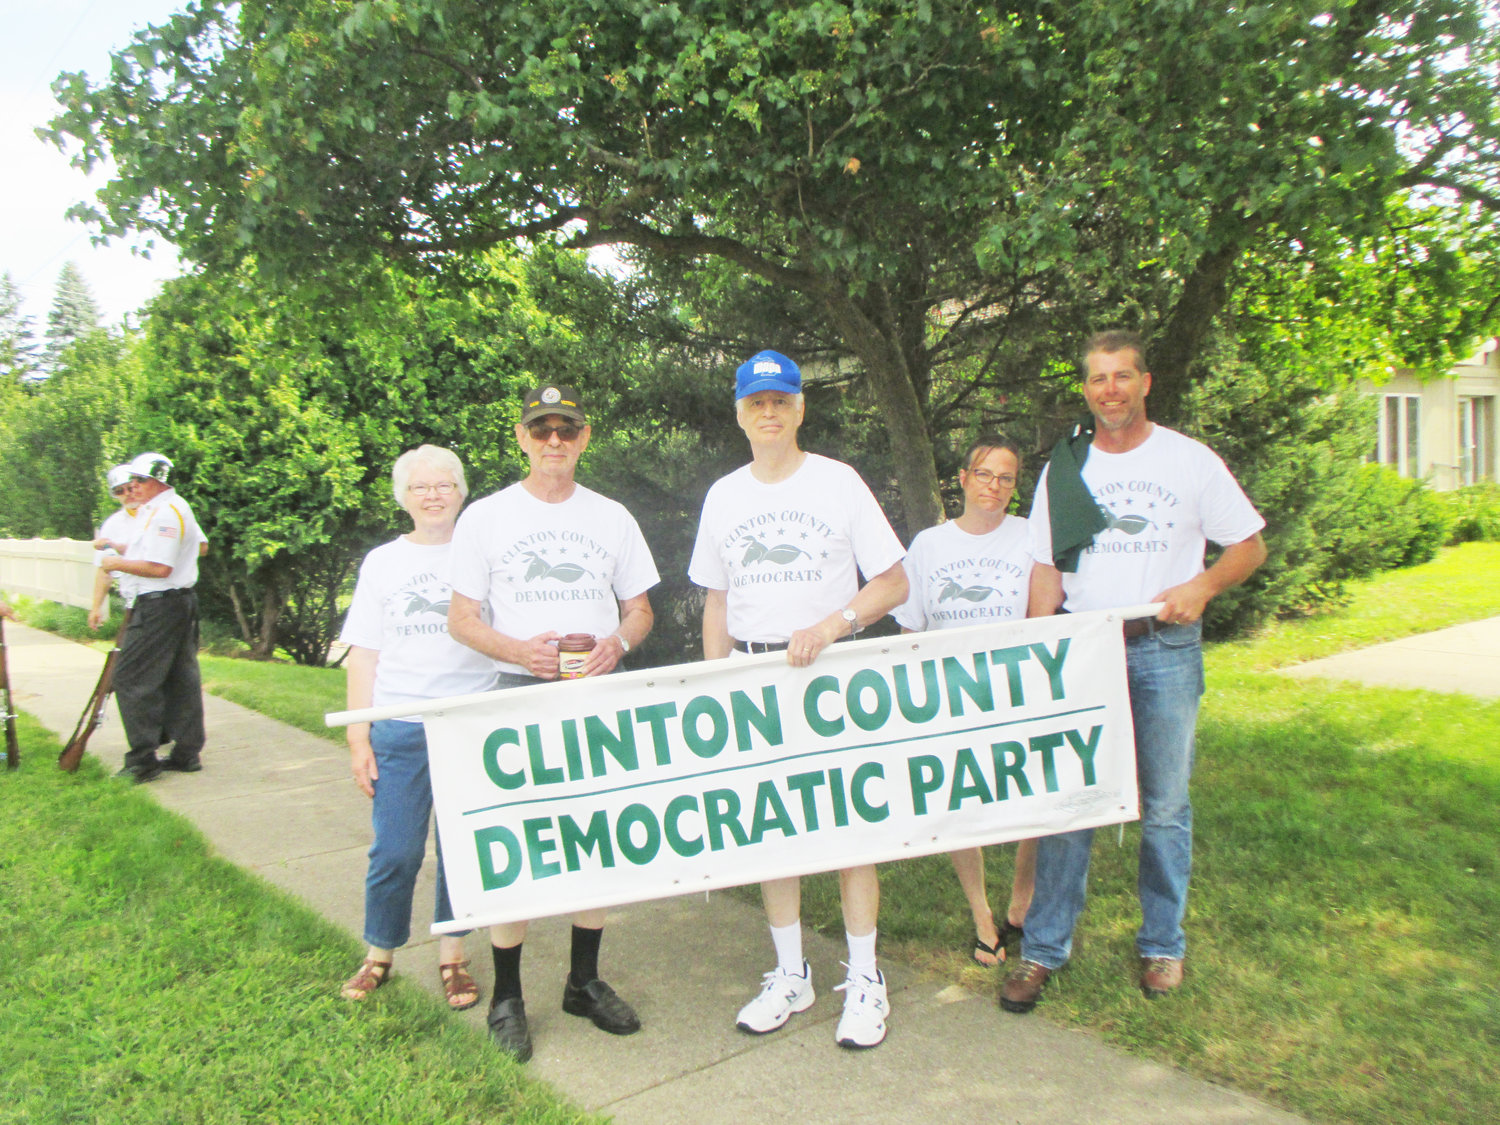 Democrats work to organize Bath Township. Left to right: Johanna Balzer, Ted Gregg, Jim Nelson, Roberta Schlenkermann and Eric Schlenkermann.